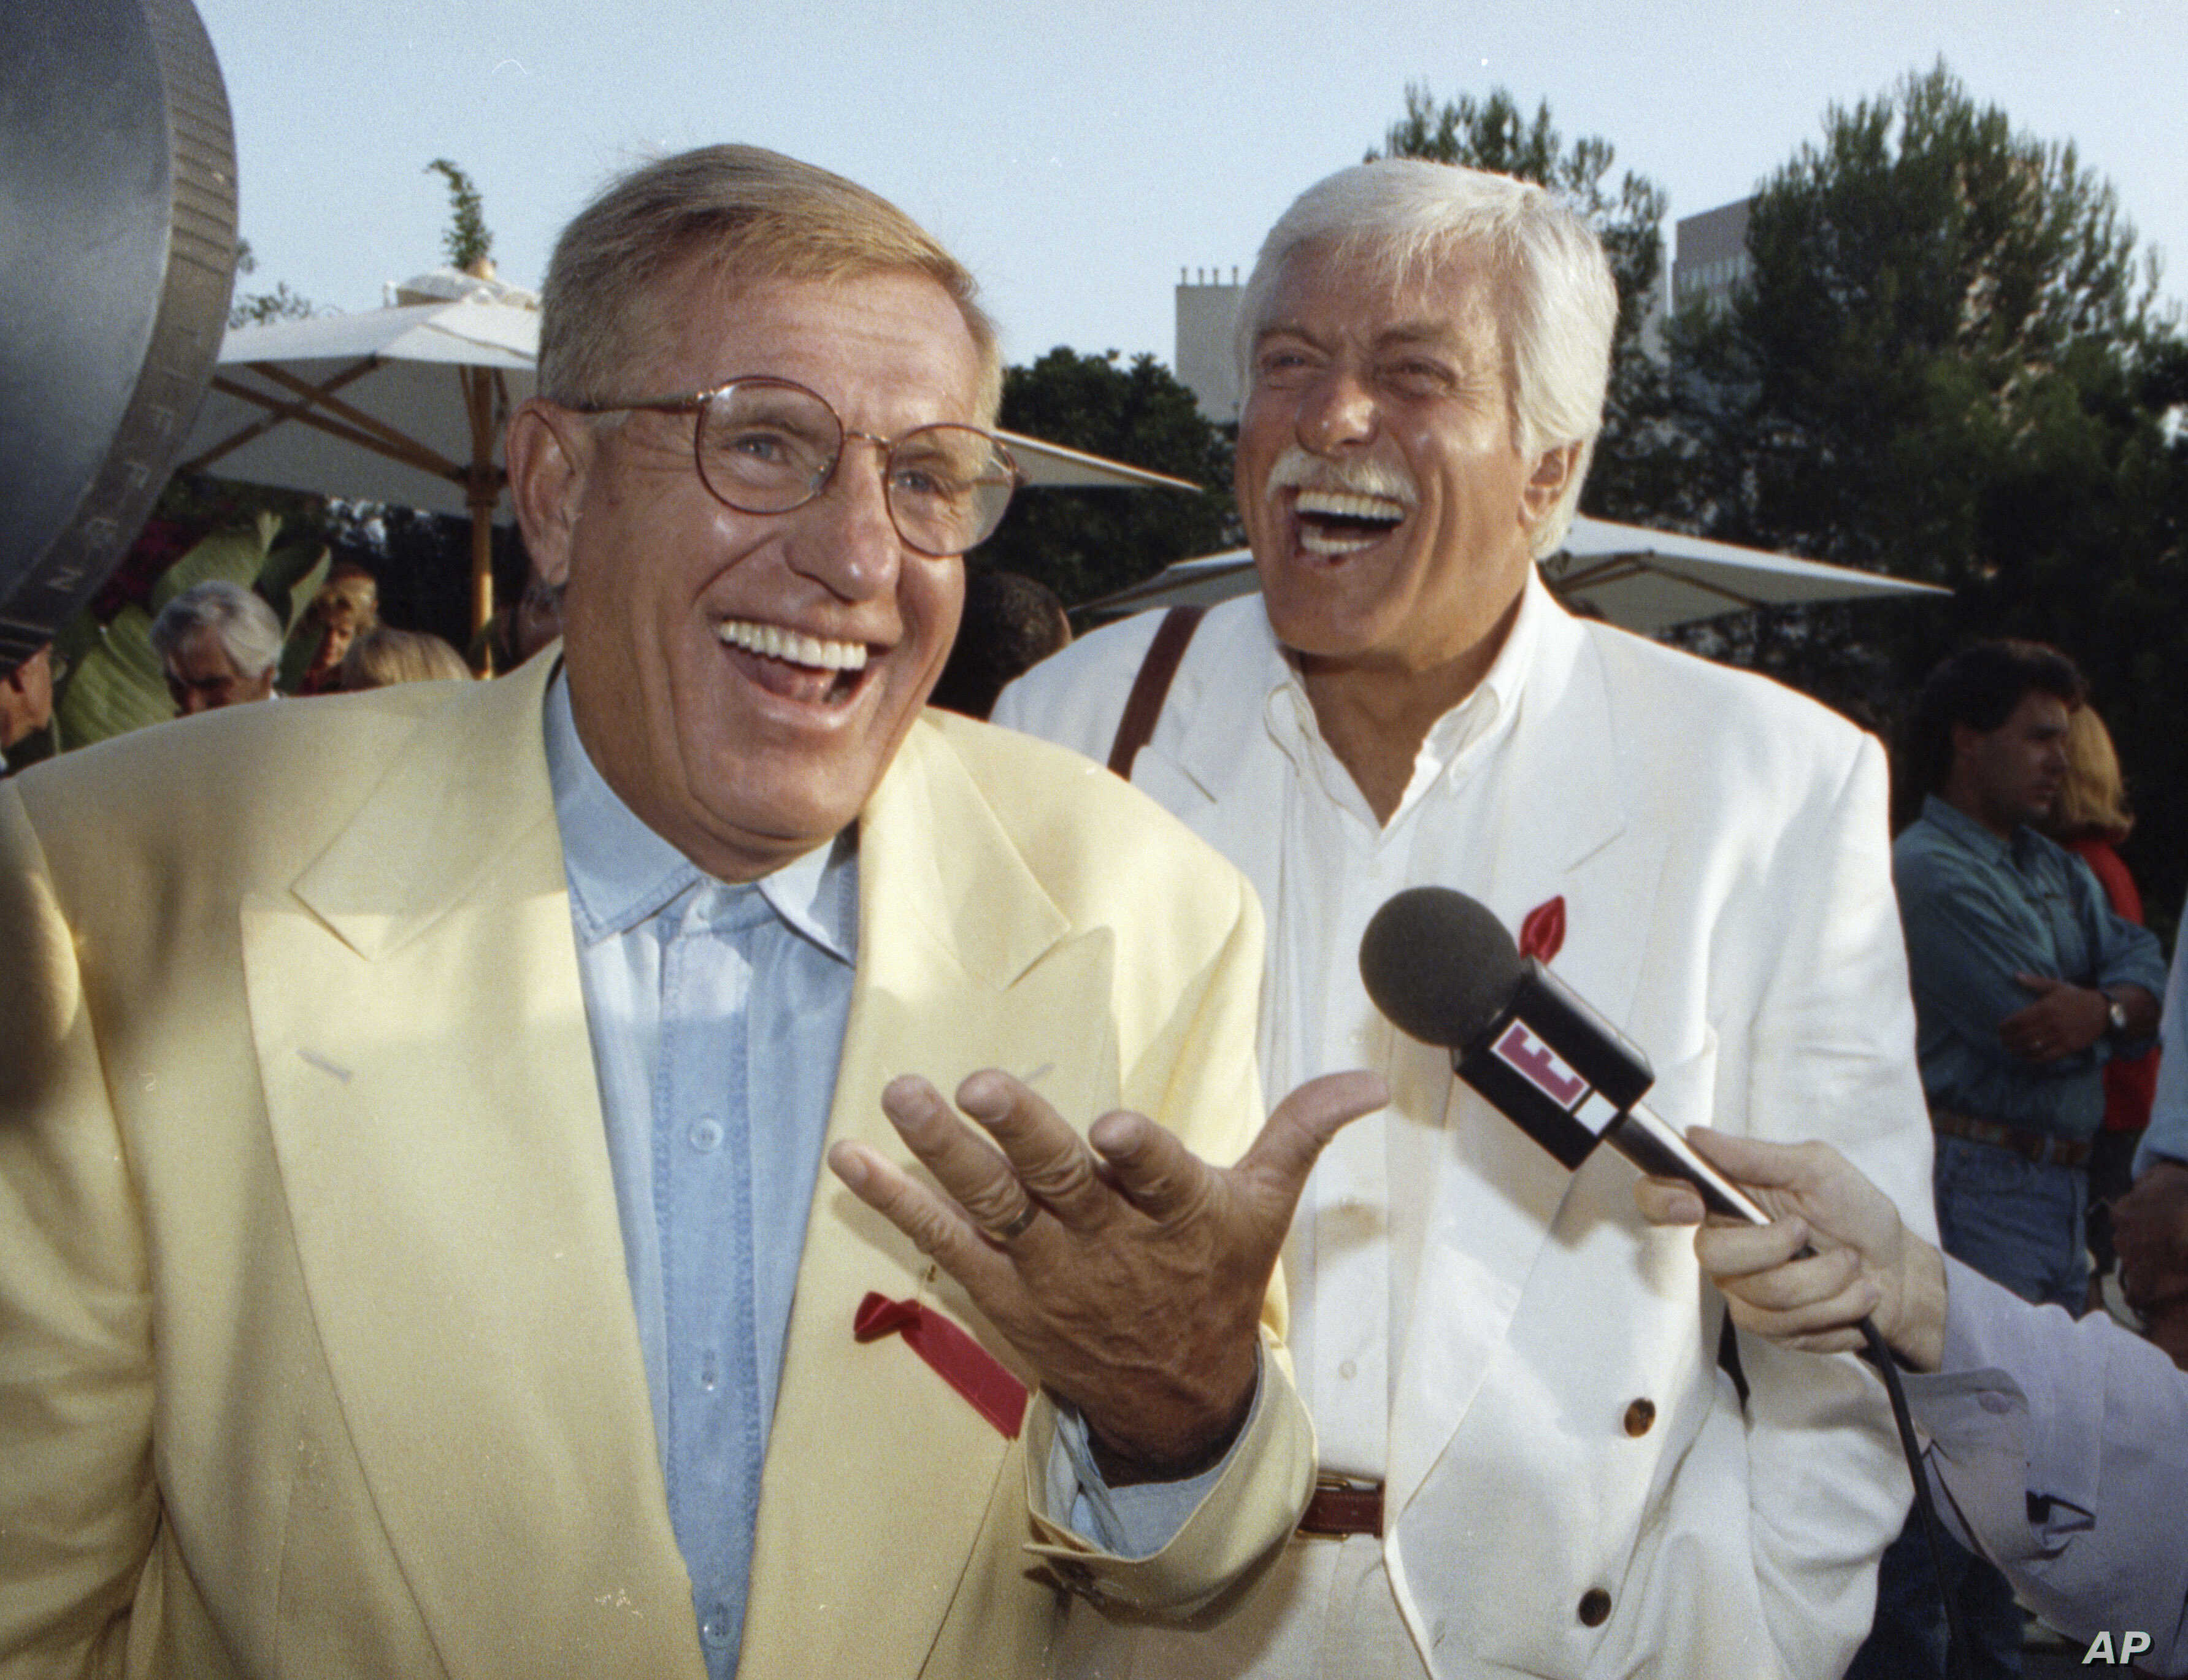 Jerry Van Dyke cause of death